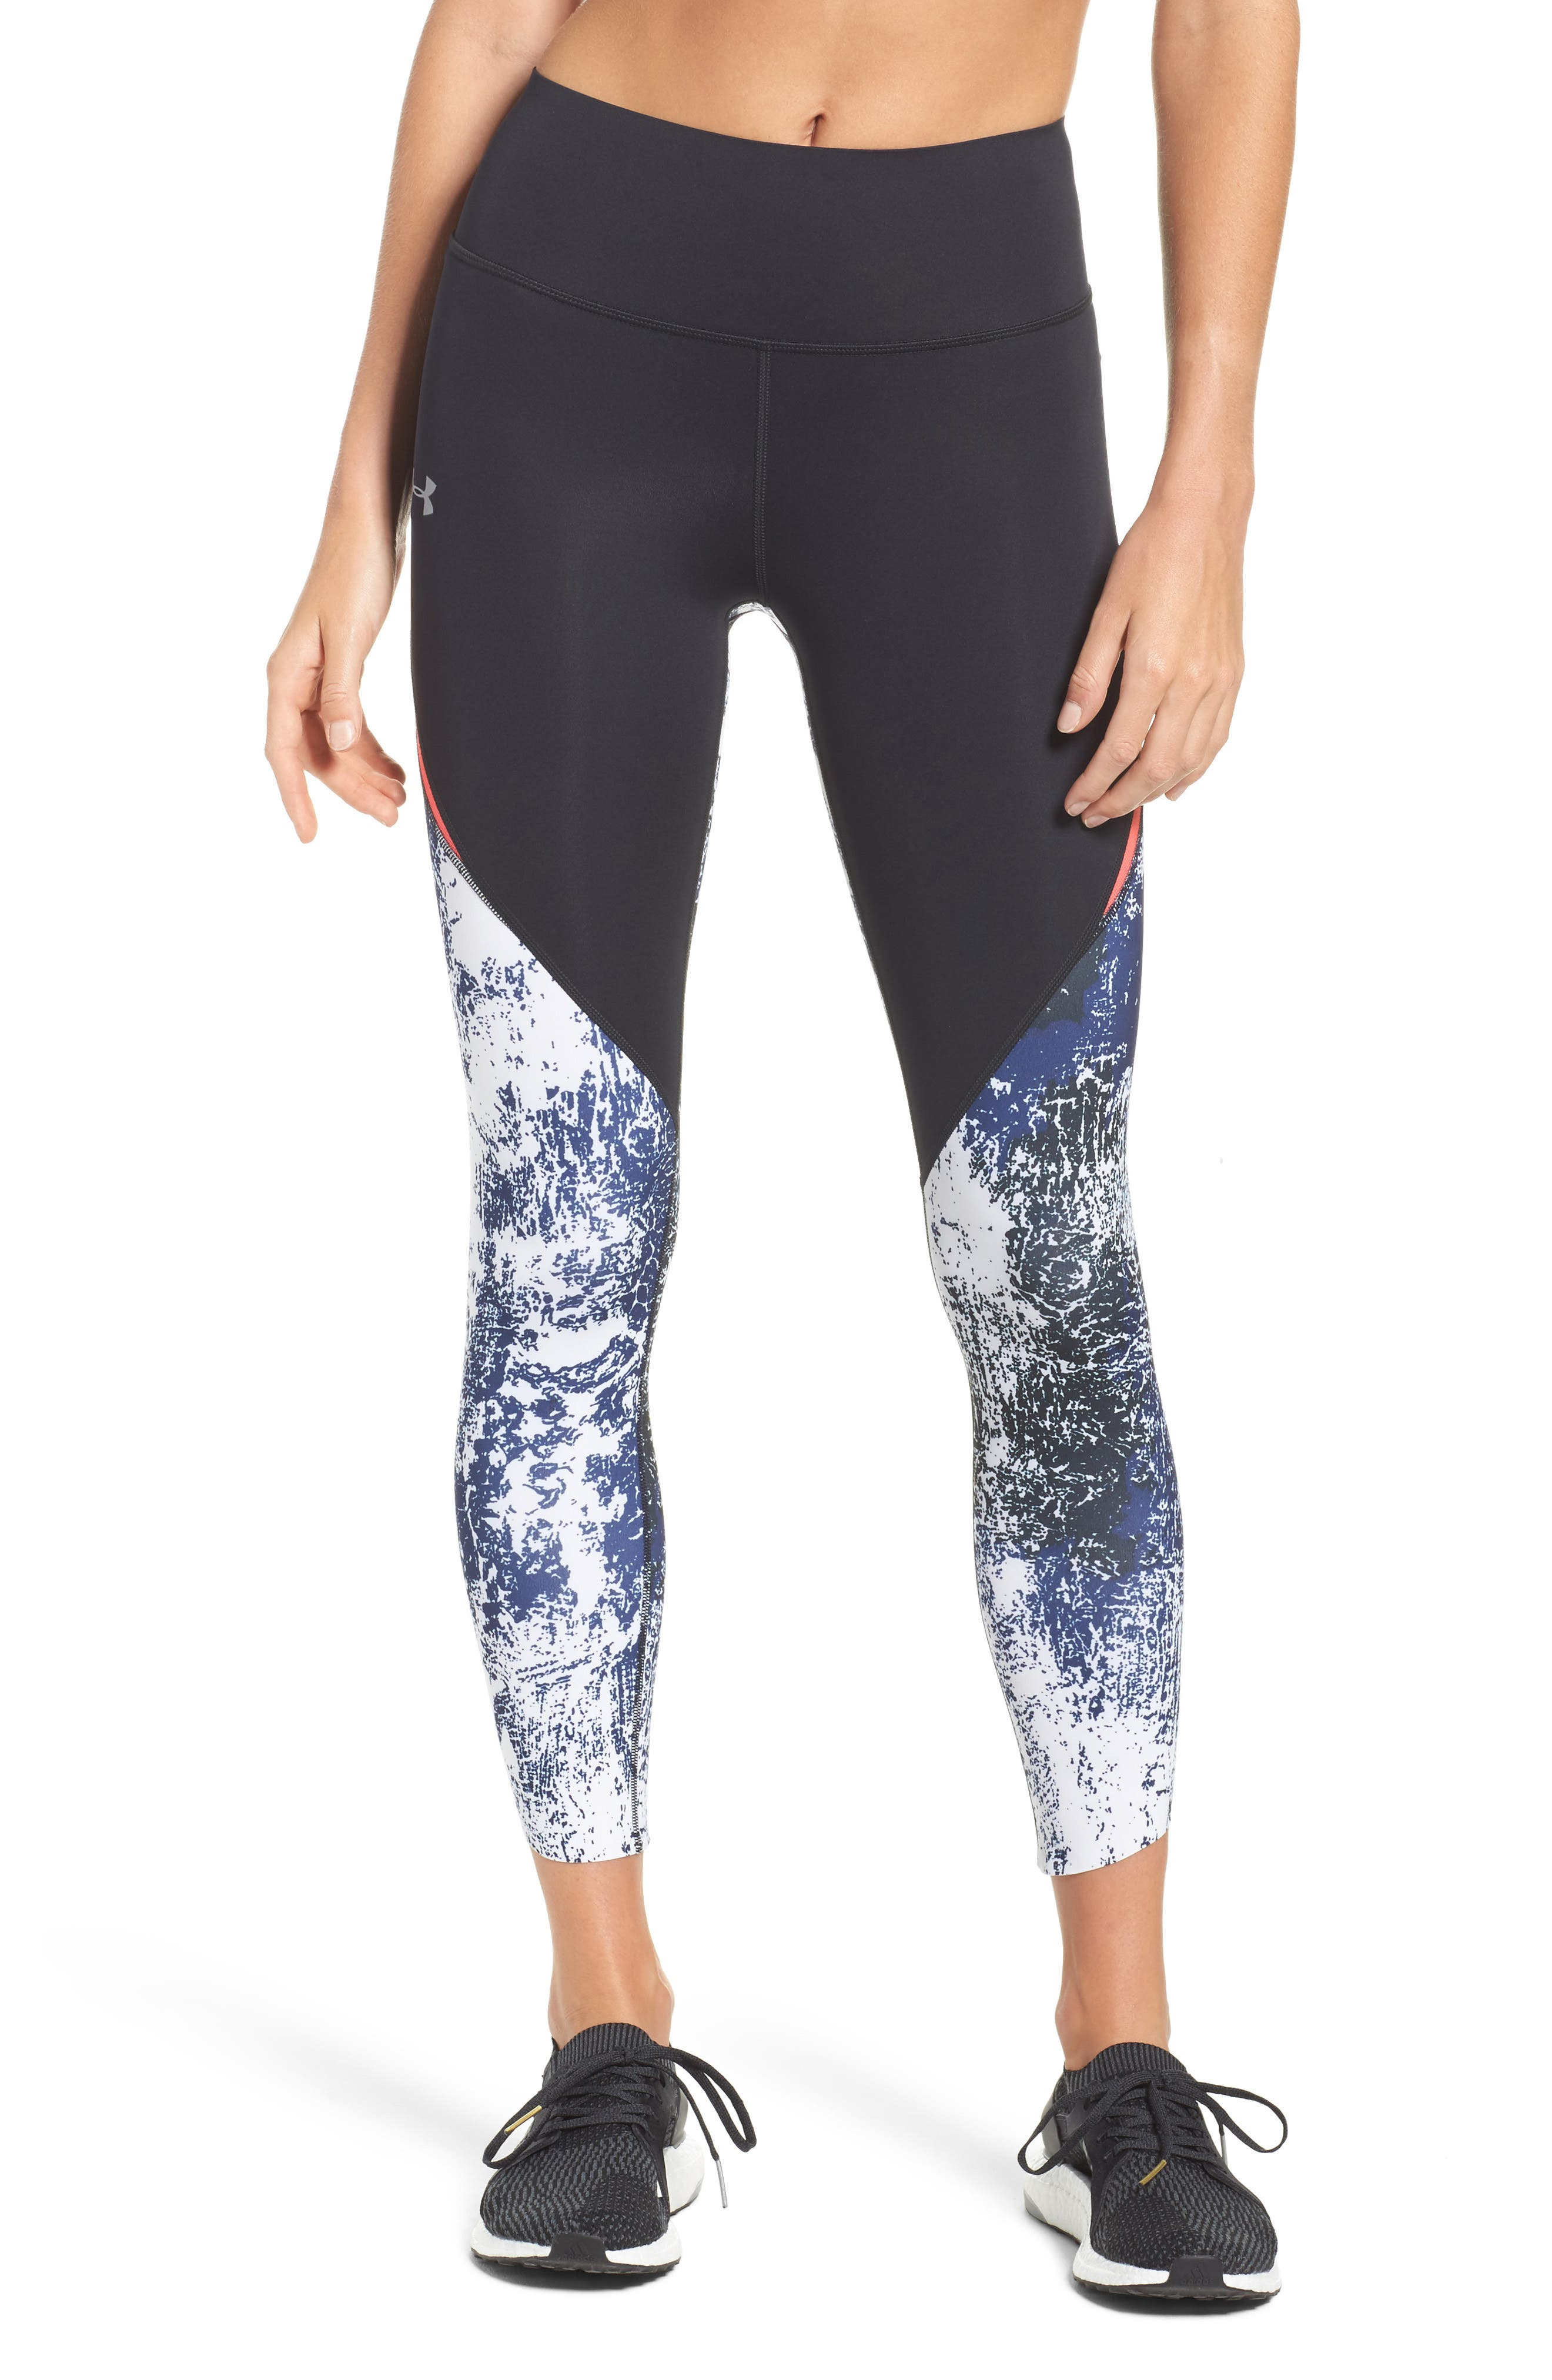 Runtrue Breathelux Crop Leggings,                             Main thumbnail 1, color,                             Black/ Red/ Reflective